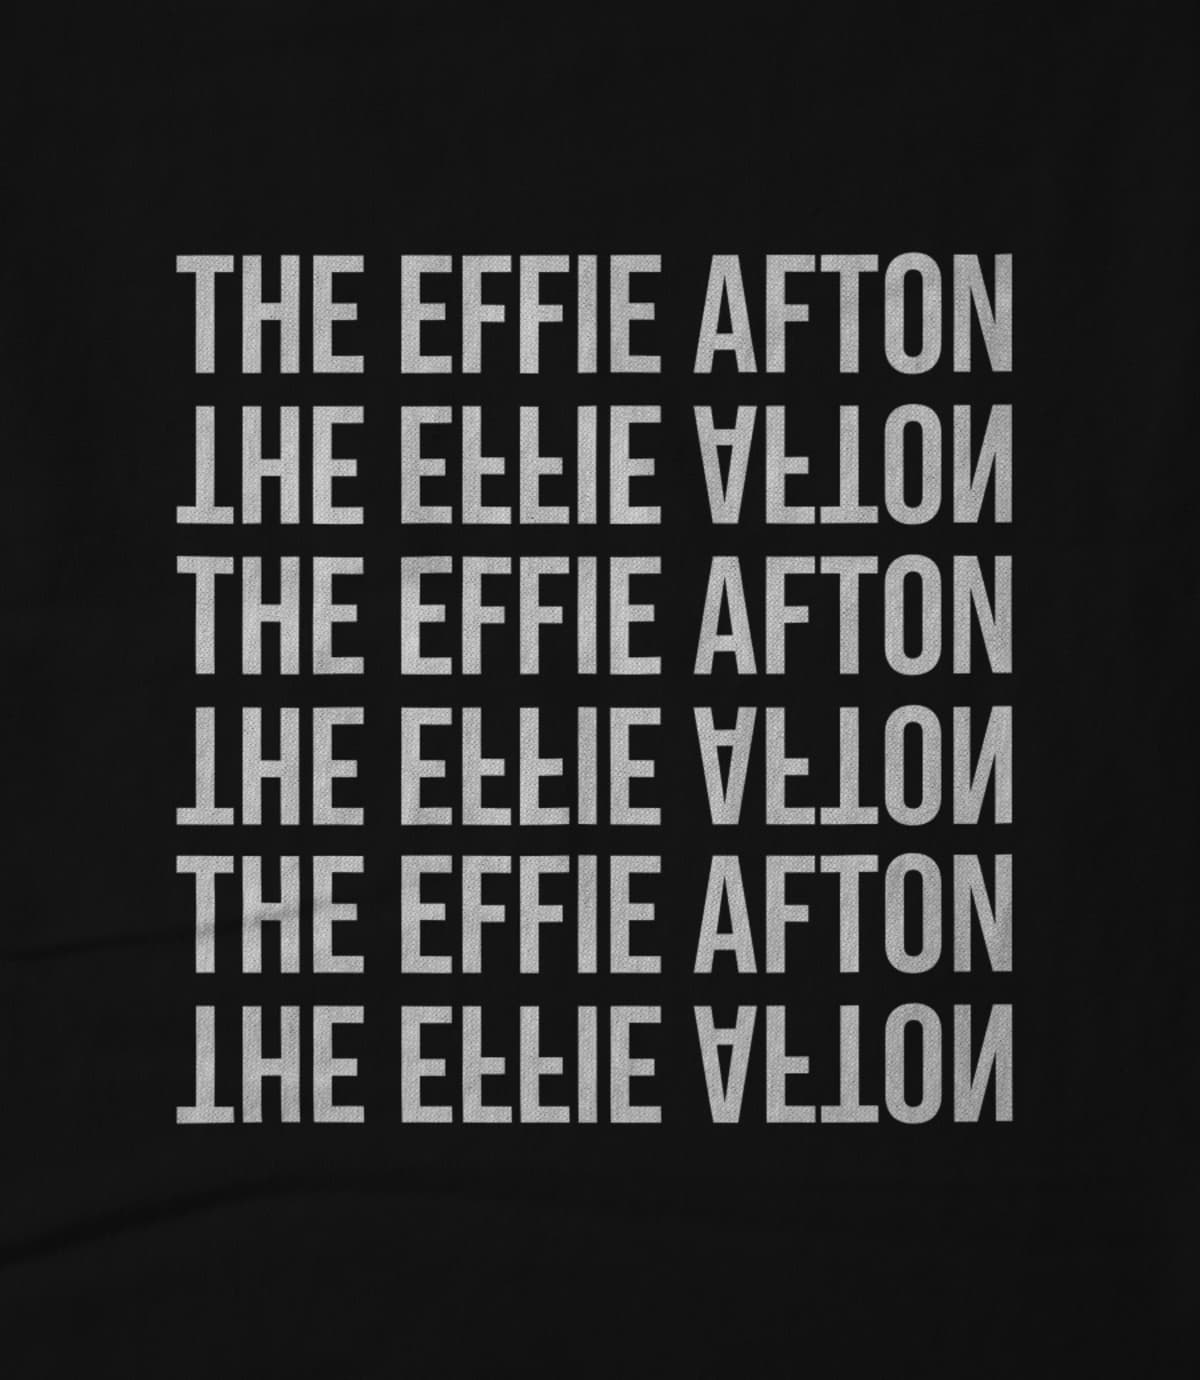 The Effie Afton